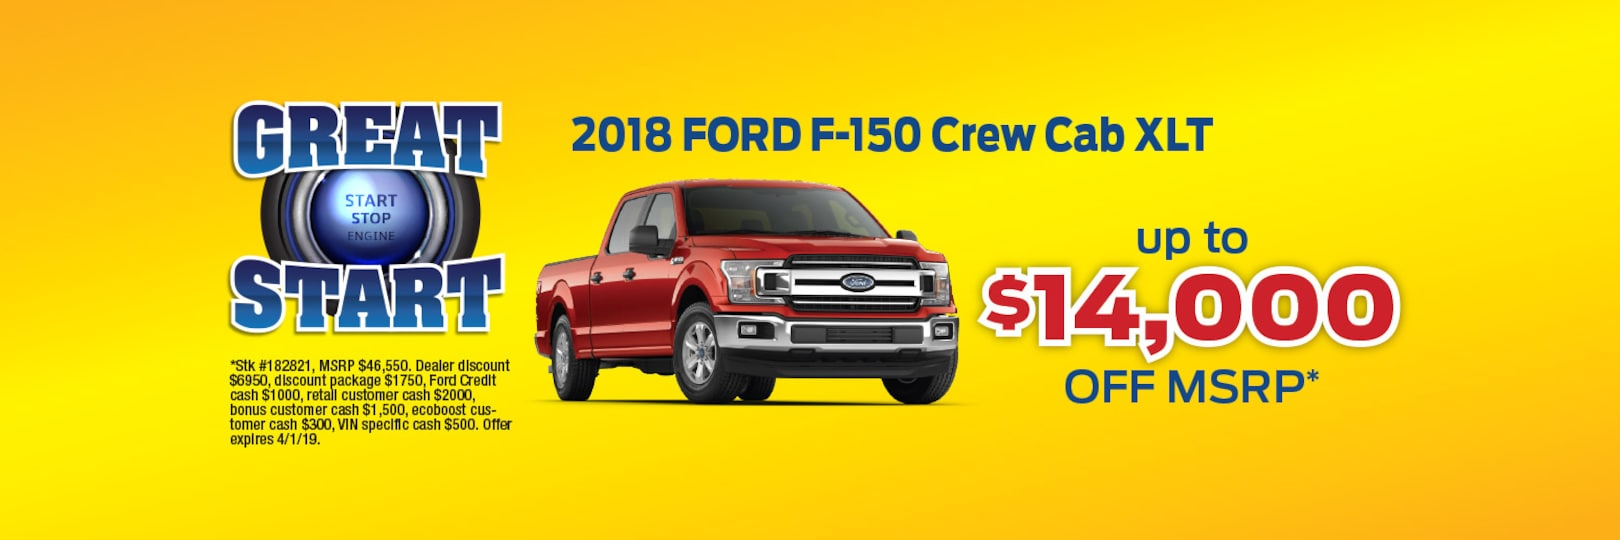 New 2019 2020 Used Ford Cars For Sale In Weatherford Tx 2002 Mustang Fuel Filter Replacement Previous Next